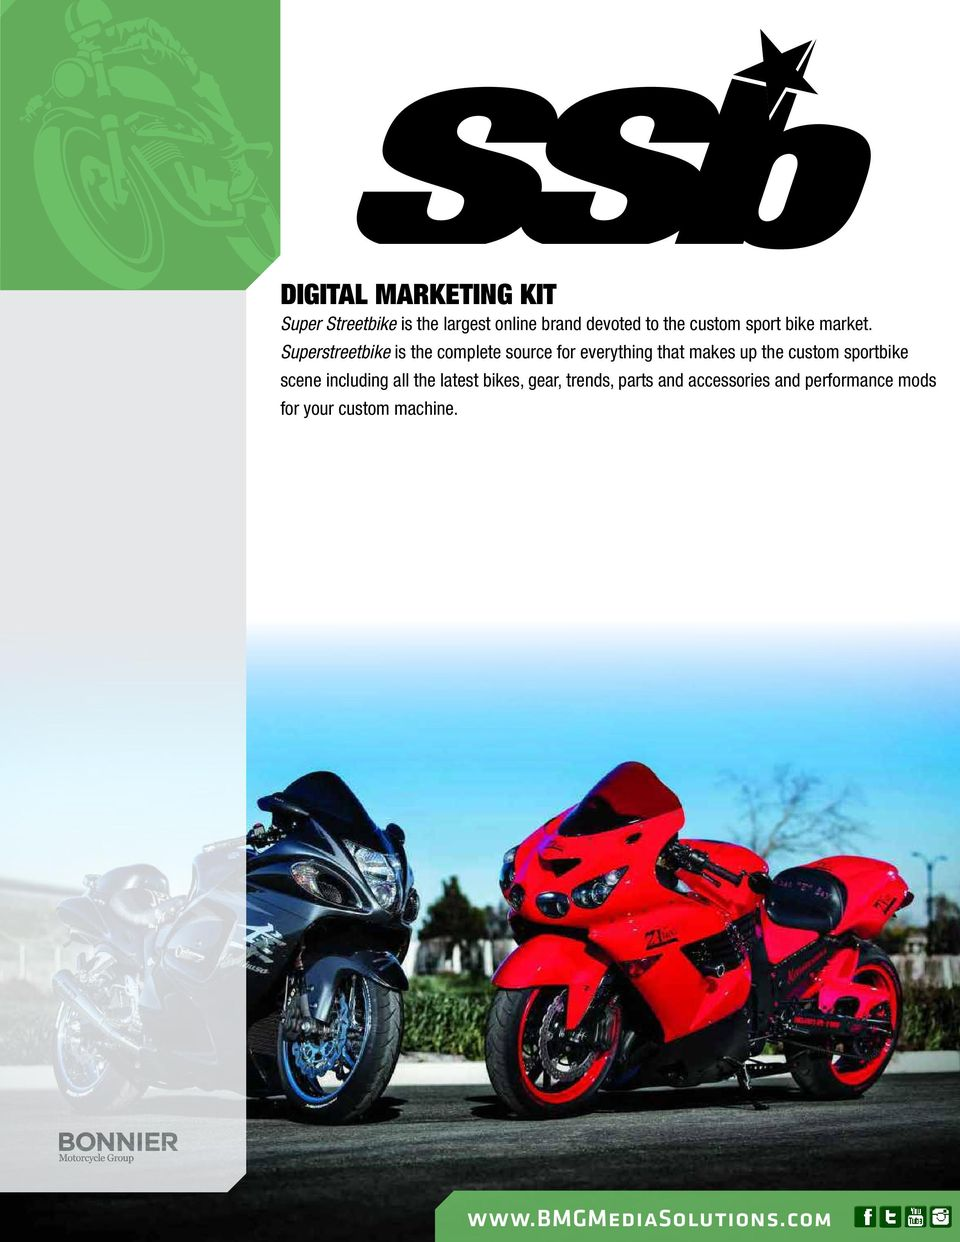 Superstreetbike is the complete source for everything that makes up the custom